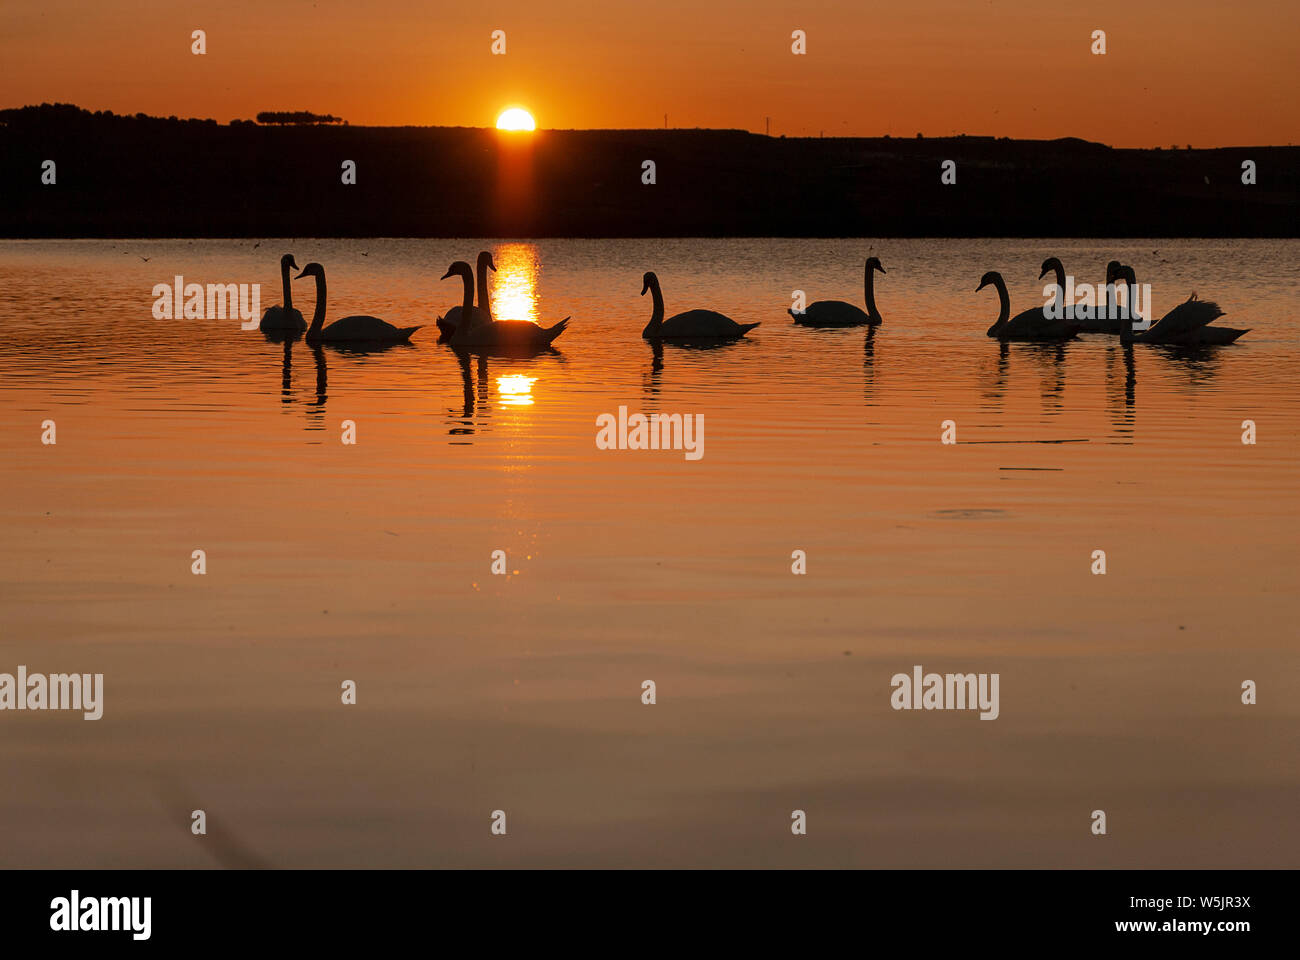 gang of swans at sunrise. Shadows and warm lights. Backlight. Silhouettes. Beautiful background. Stock Photo